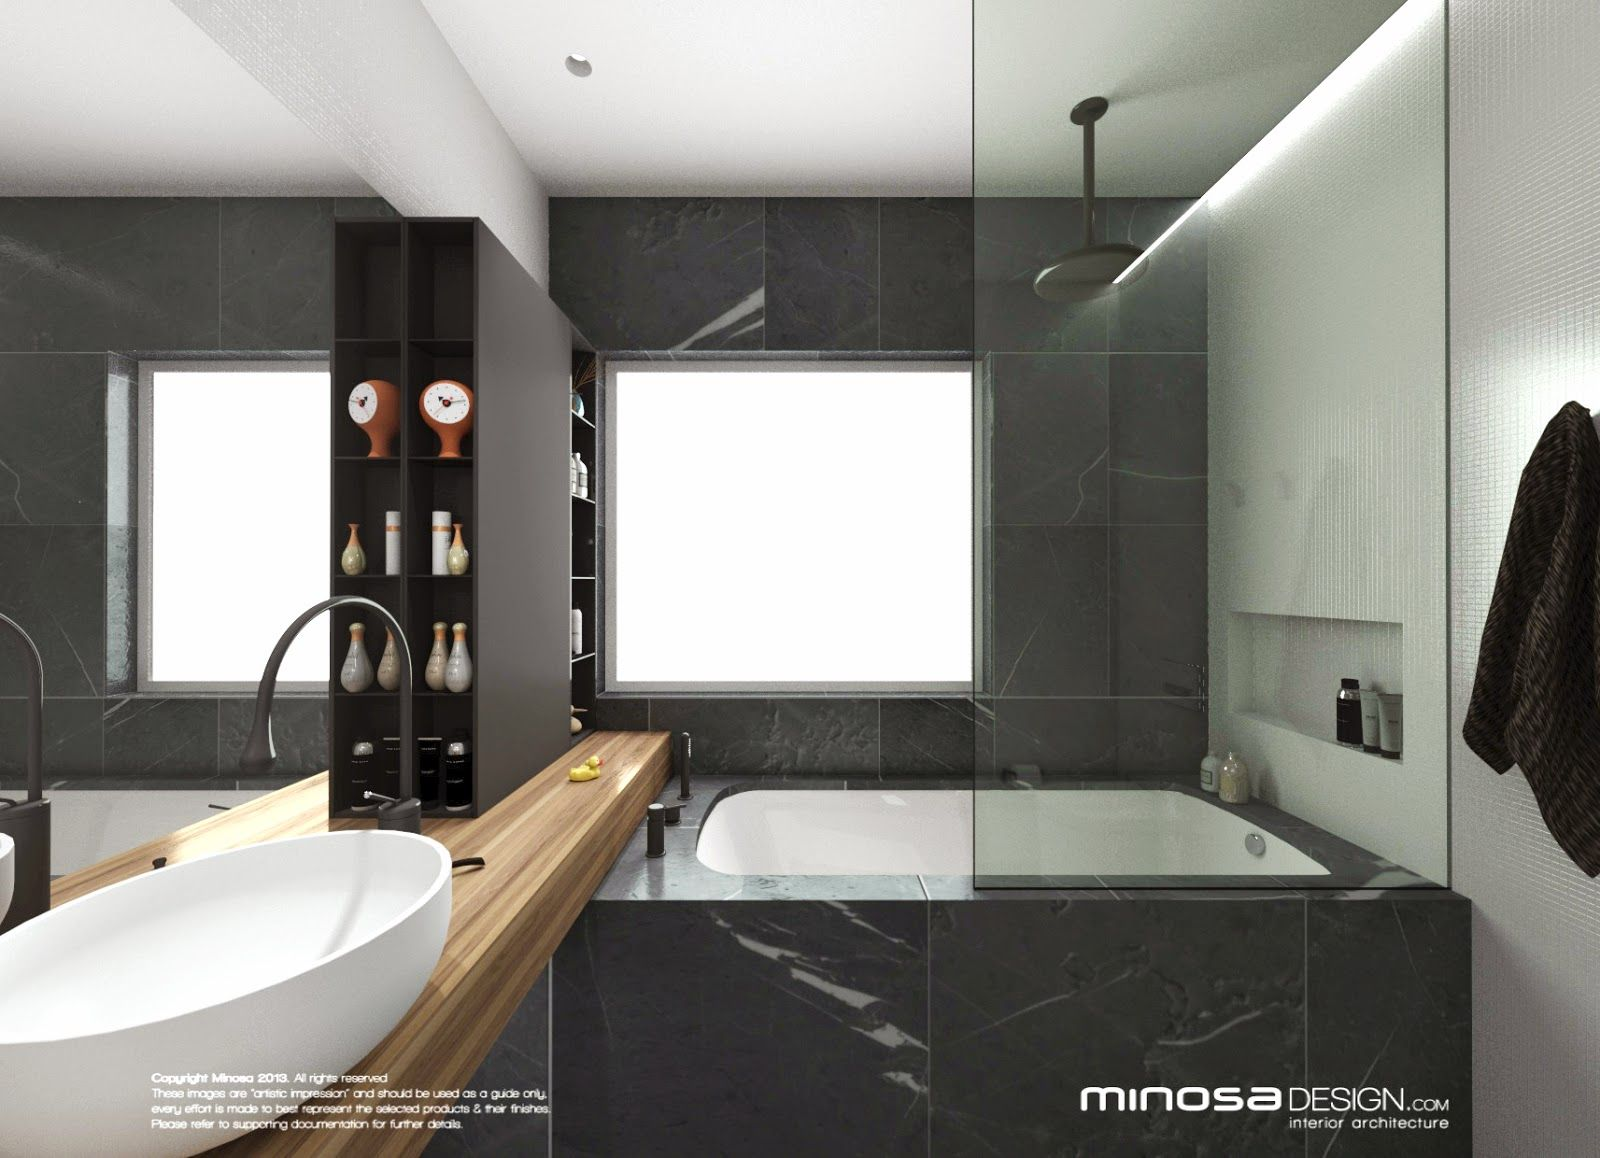 Minosa Design Bathroom Design Small space